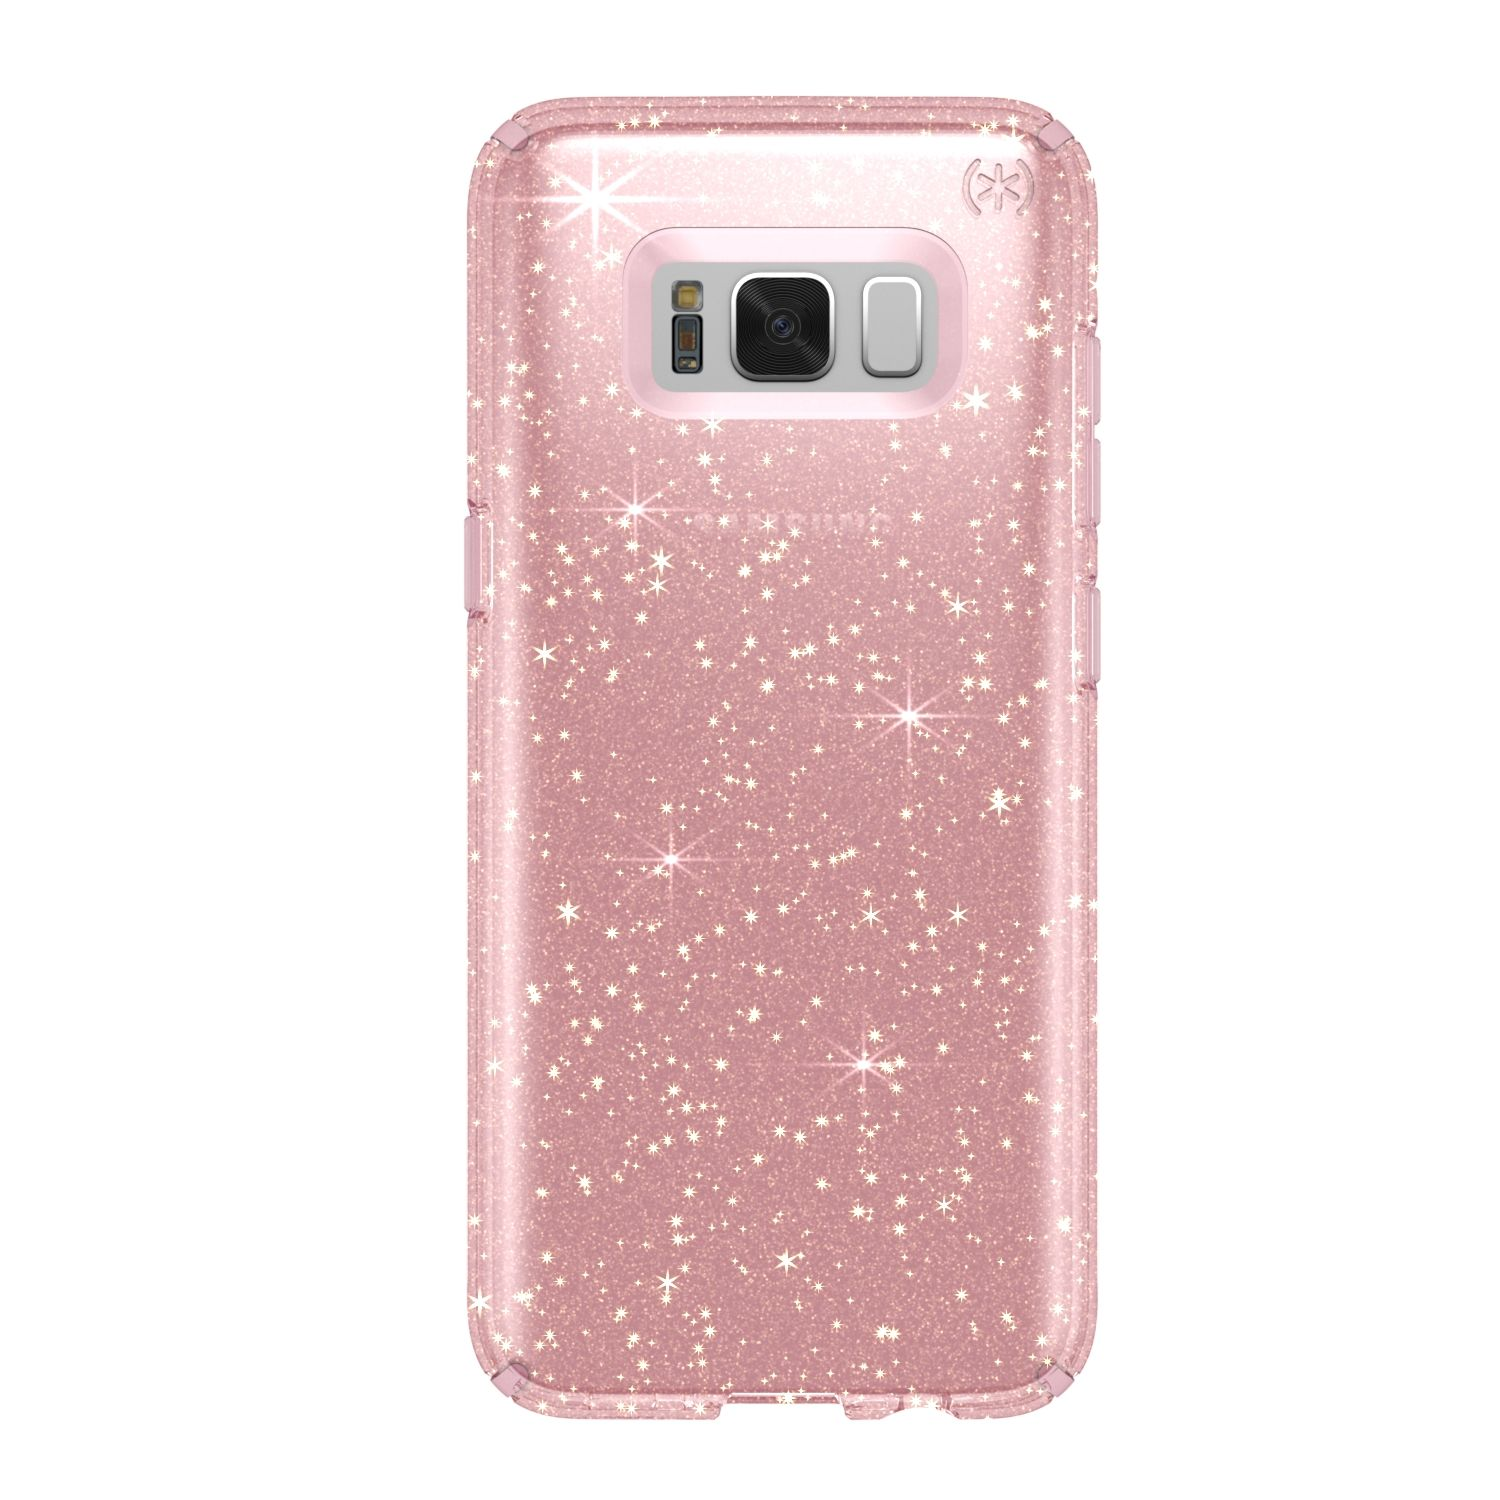 Протектор Speck Presidio за Samsung Galaxy S8 Plus, Clear Gold Glitter/Rose Pink, SPS8PCLRP